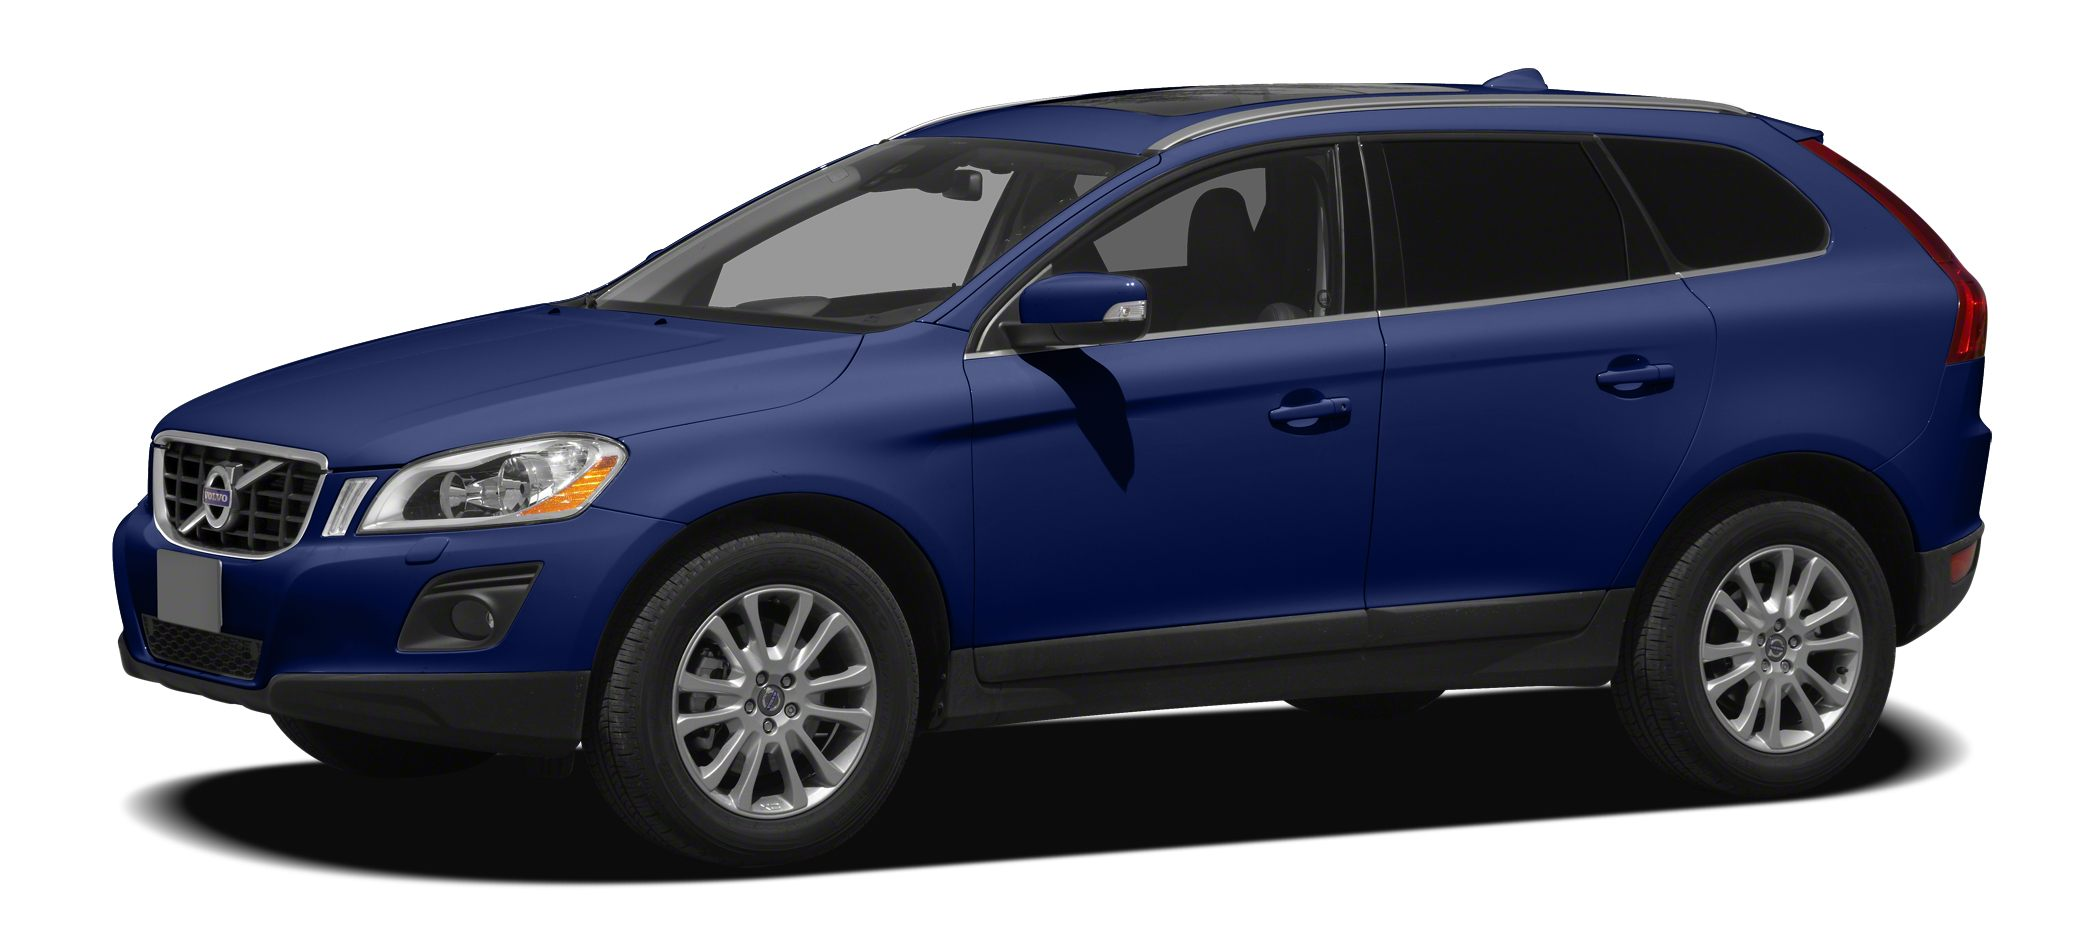 2012 Volvo XC60 T6 SAVE AT THE PUMP 23 MPG Hwy New Arrival This wonderful SUV with its gripp